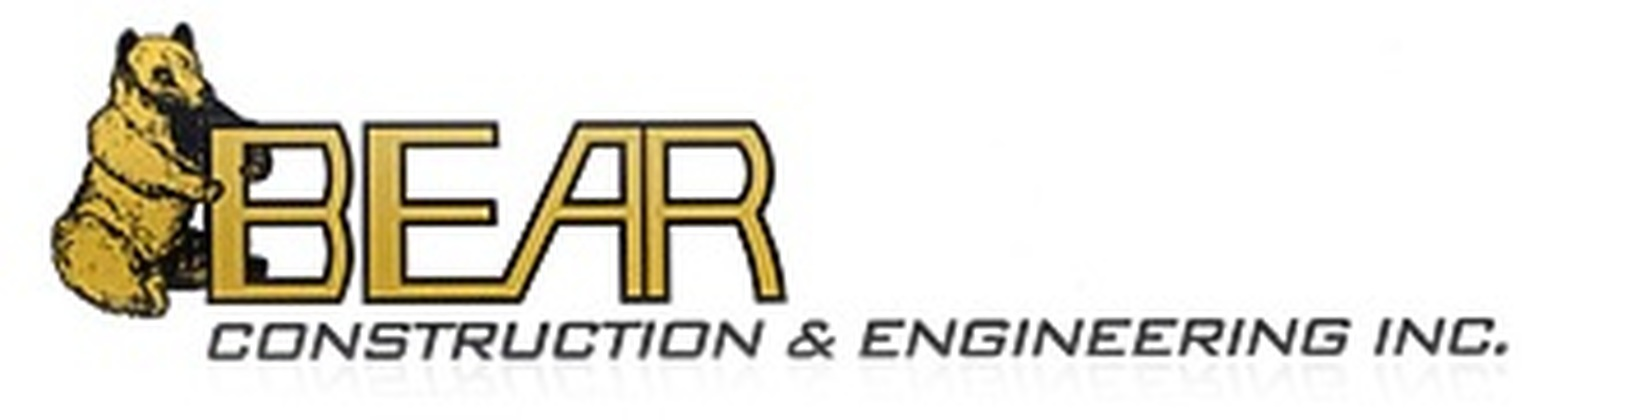 Bear Construction & Engineering Inc.